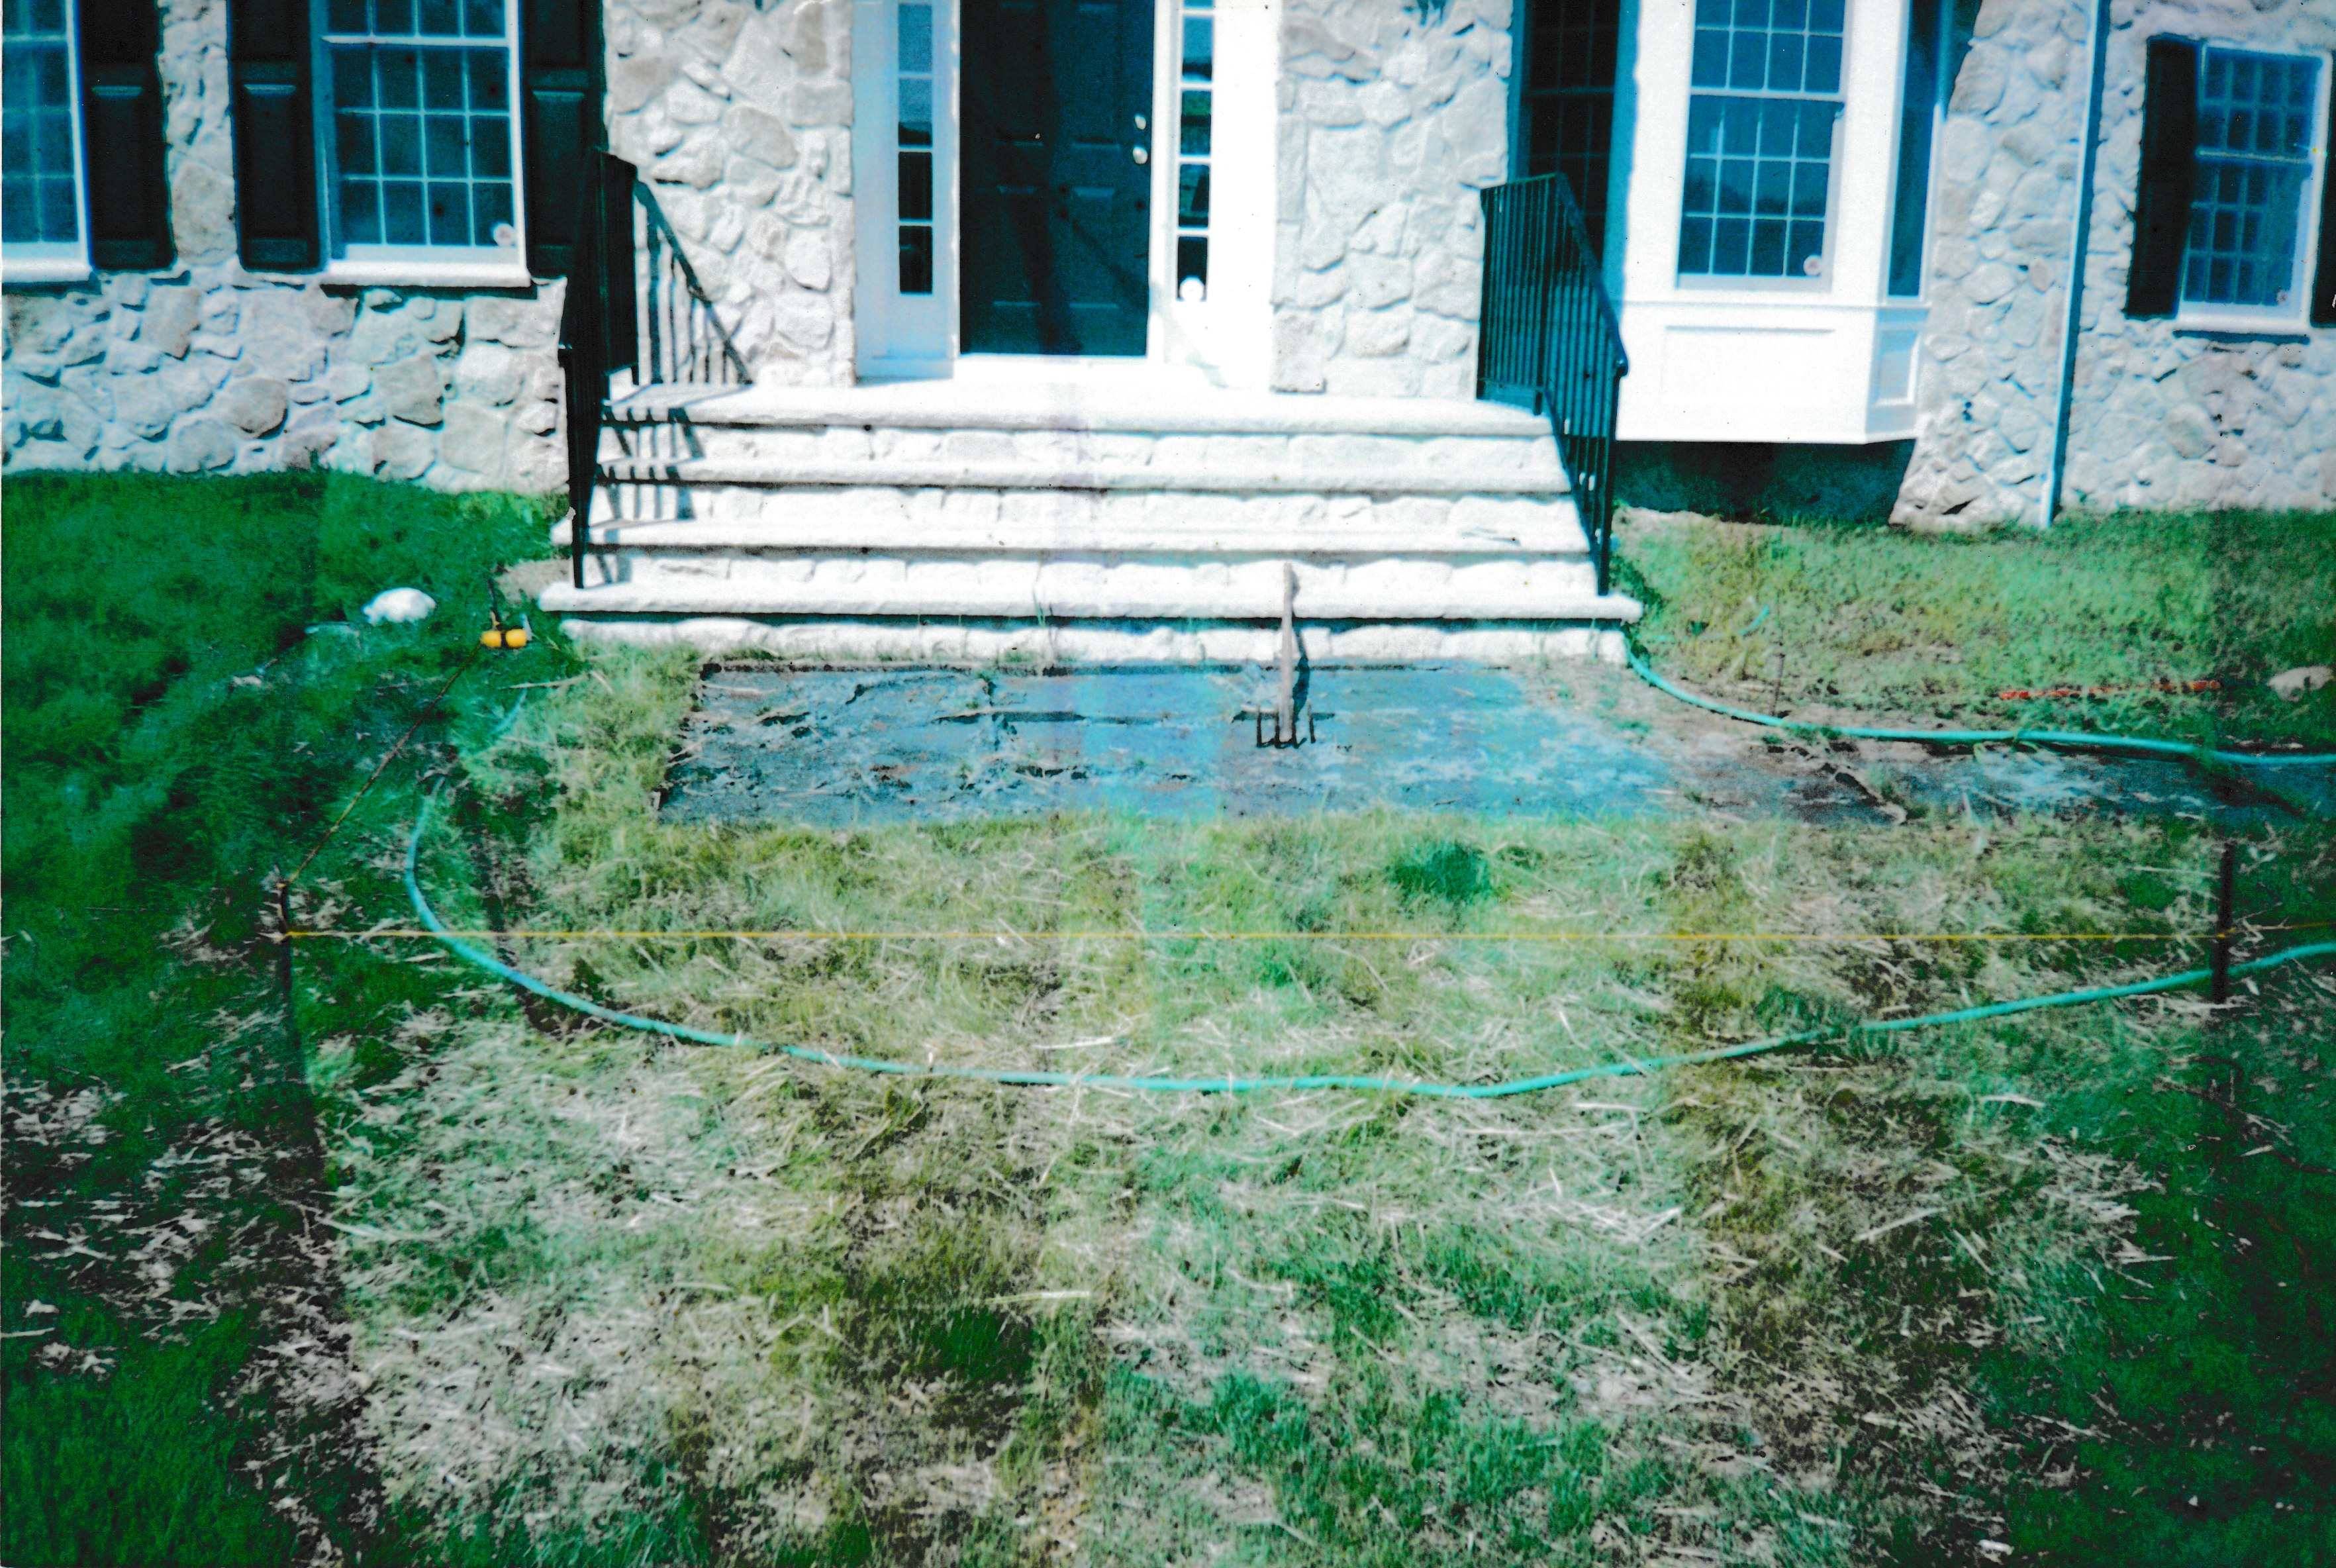 Neglected lawn in front of stairs